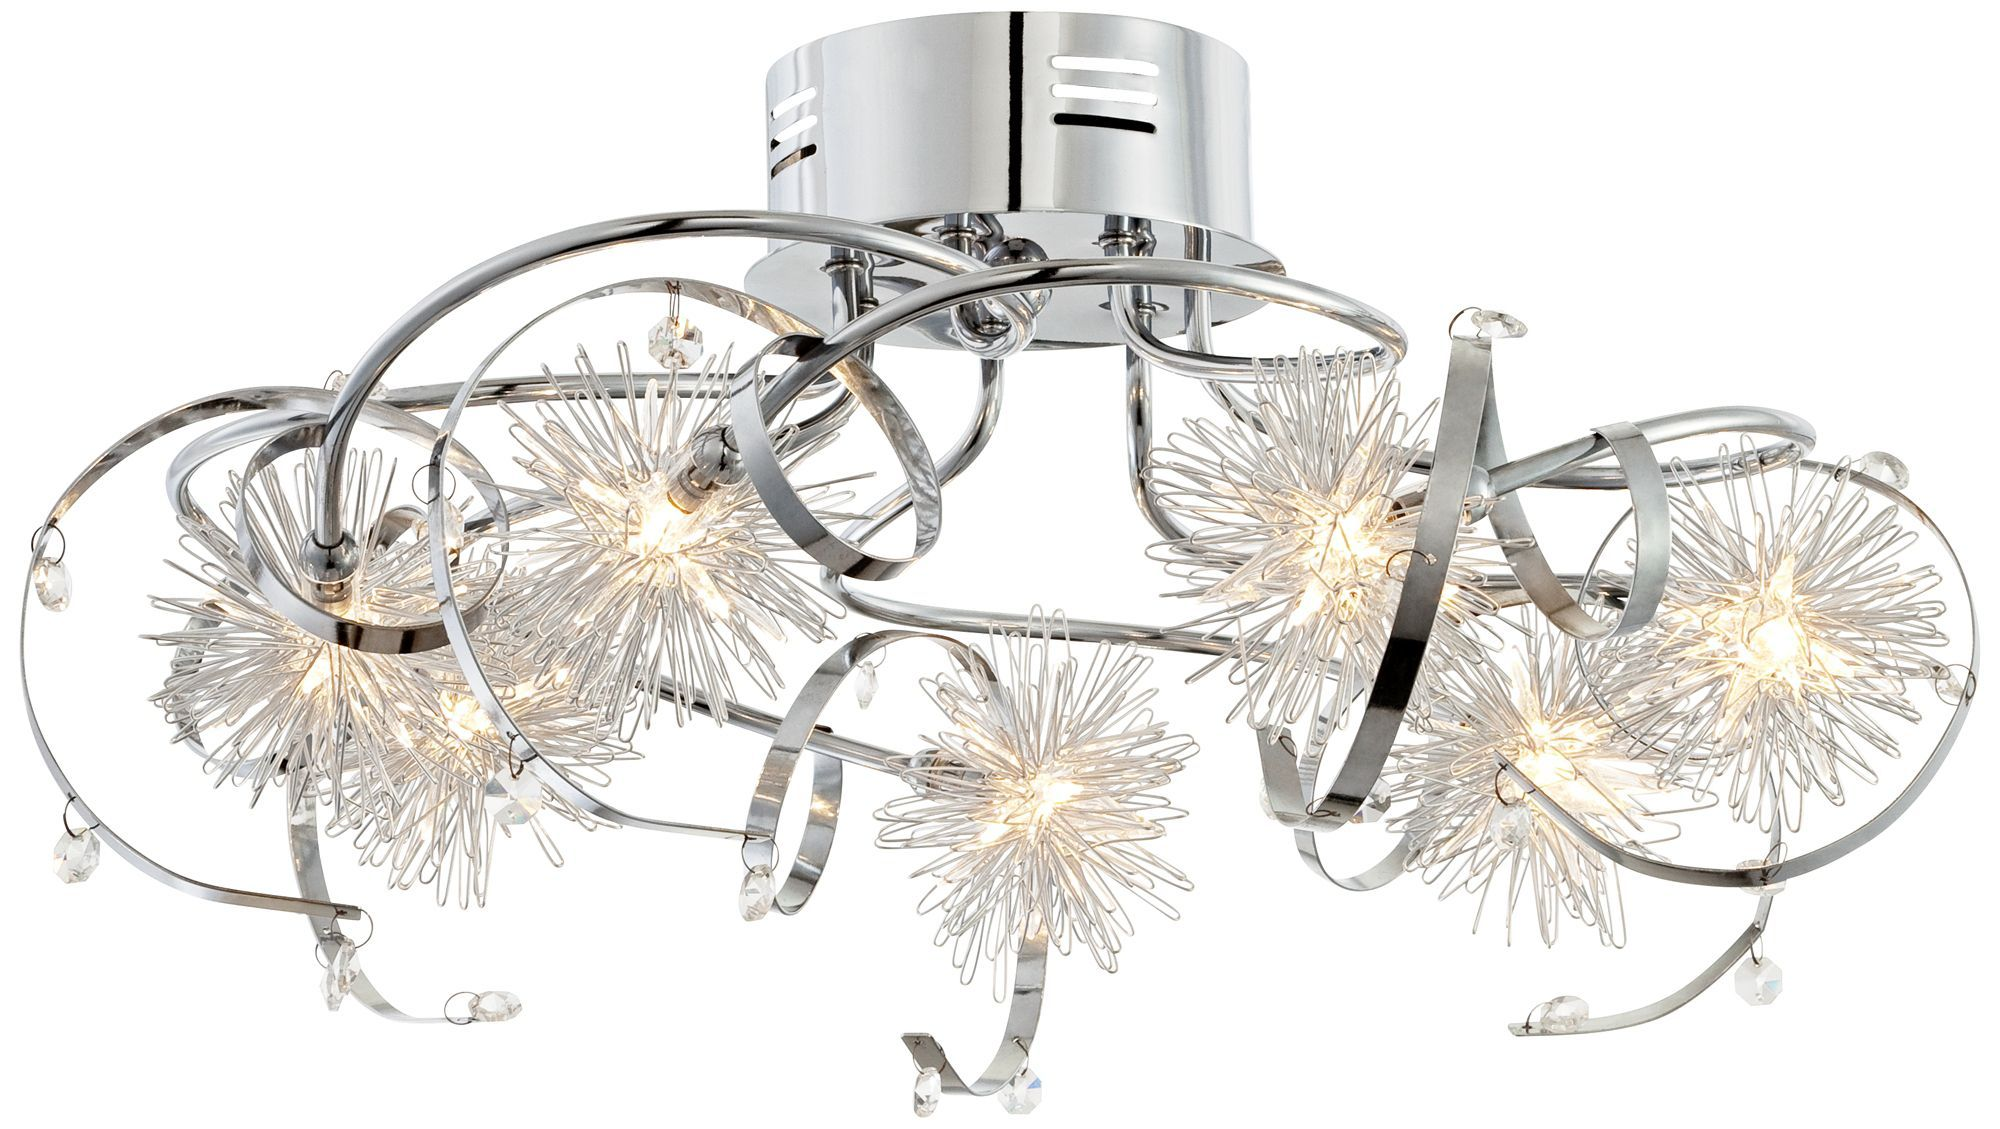 Cool Kids Ceiling Lights Constellations White Chrome Possini Euro Ceiling Fixture